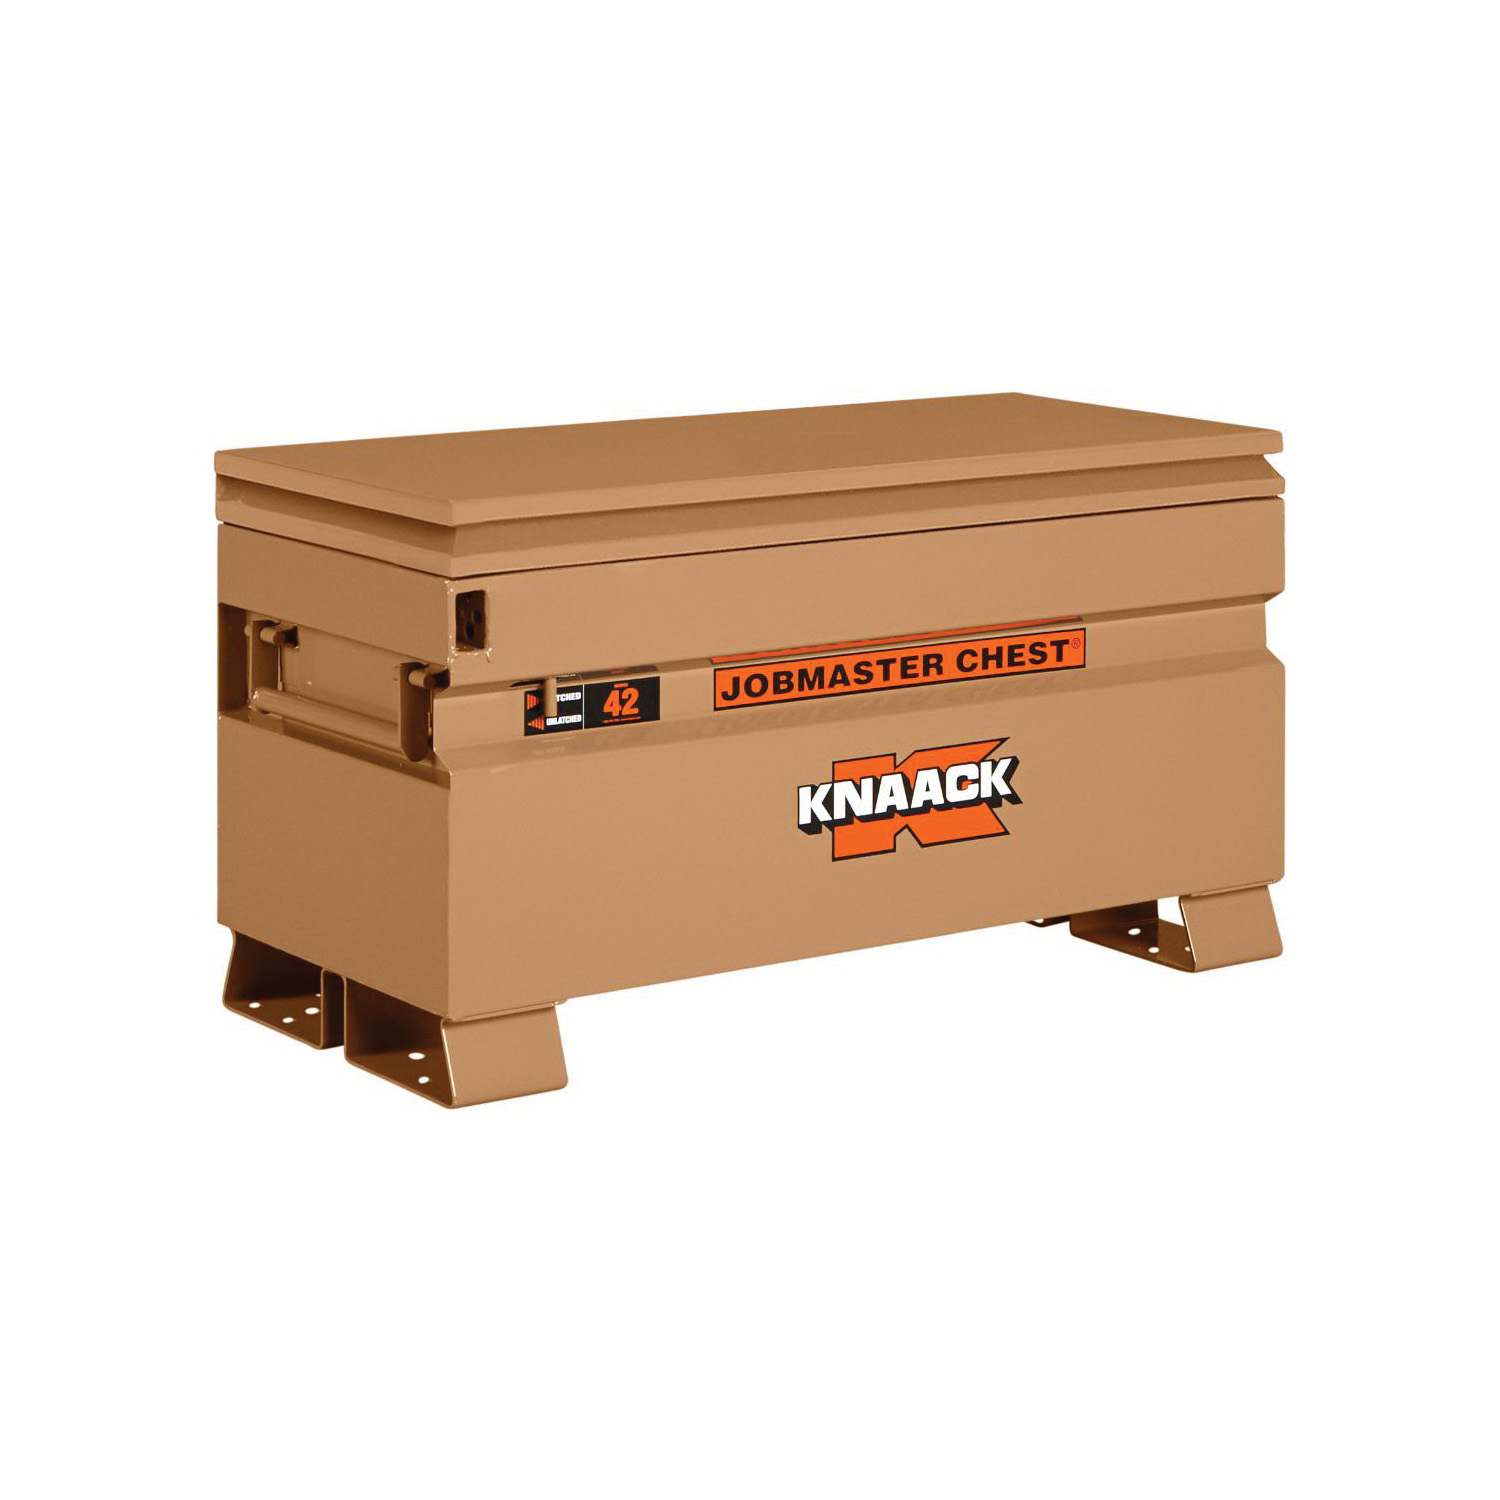 KNAACK® JOBMASTER® 42 Chest Box, 23-3/8 in x 19 in W x 42 in D, 9 cu-ft Storage, Steel